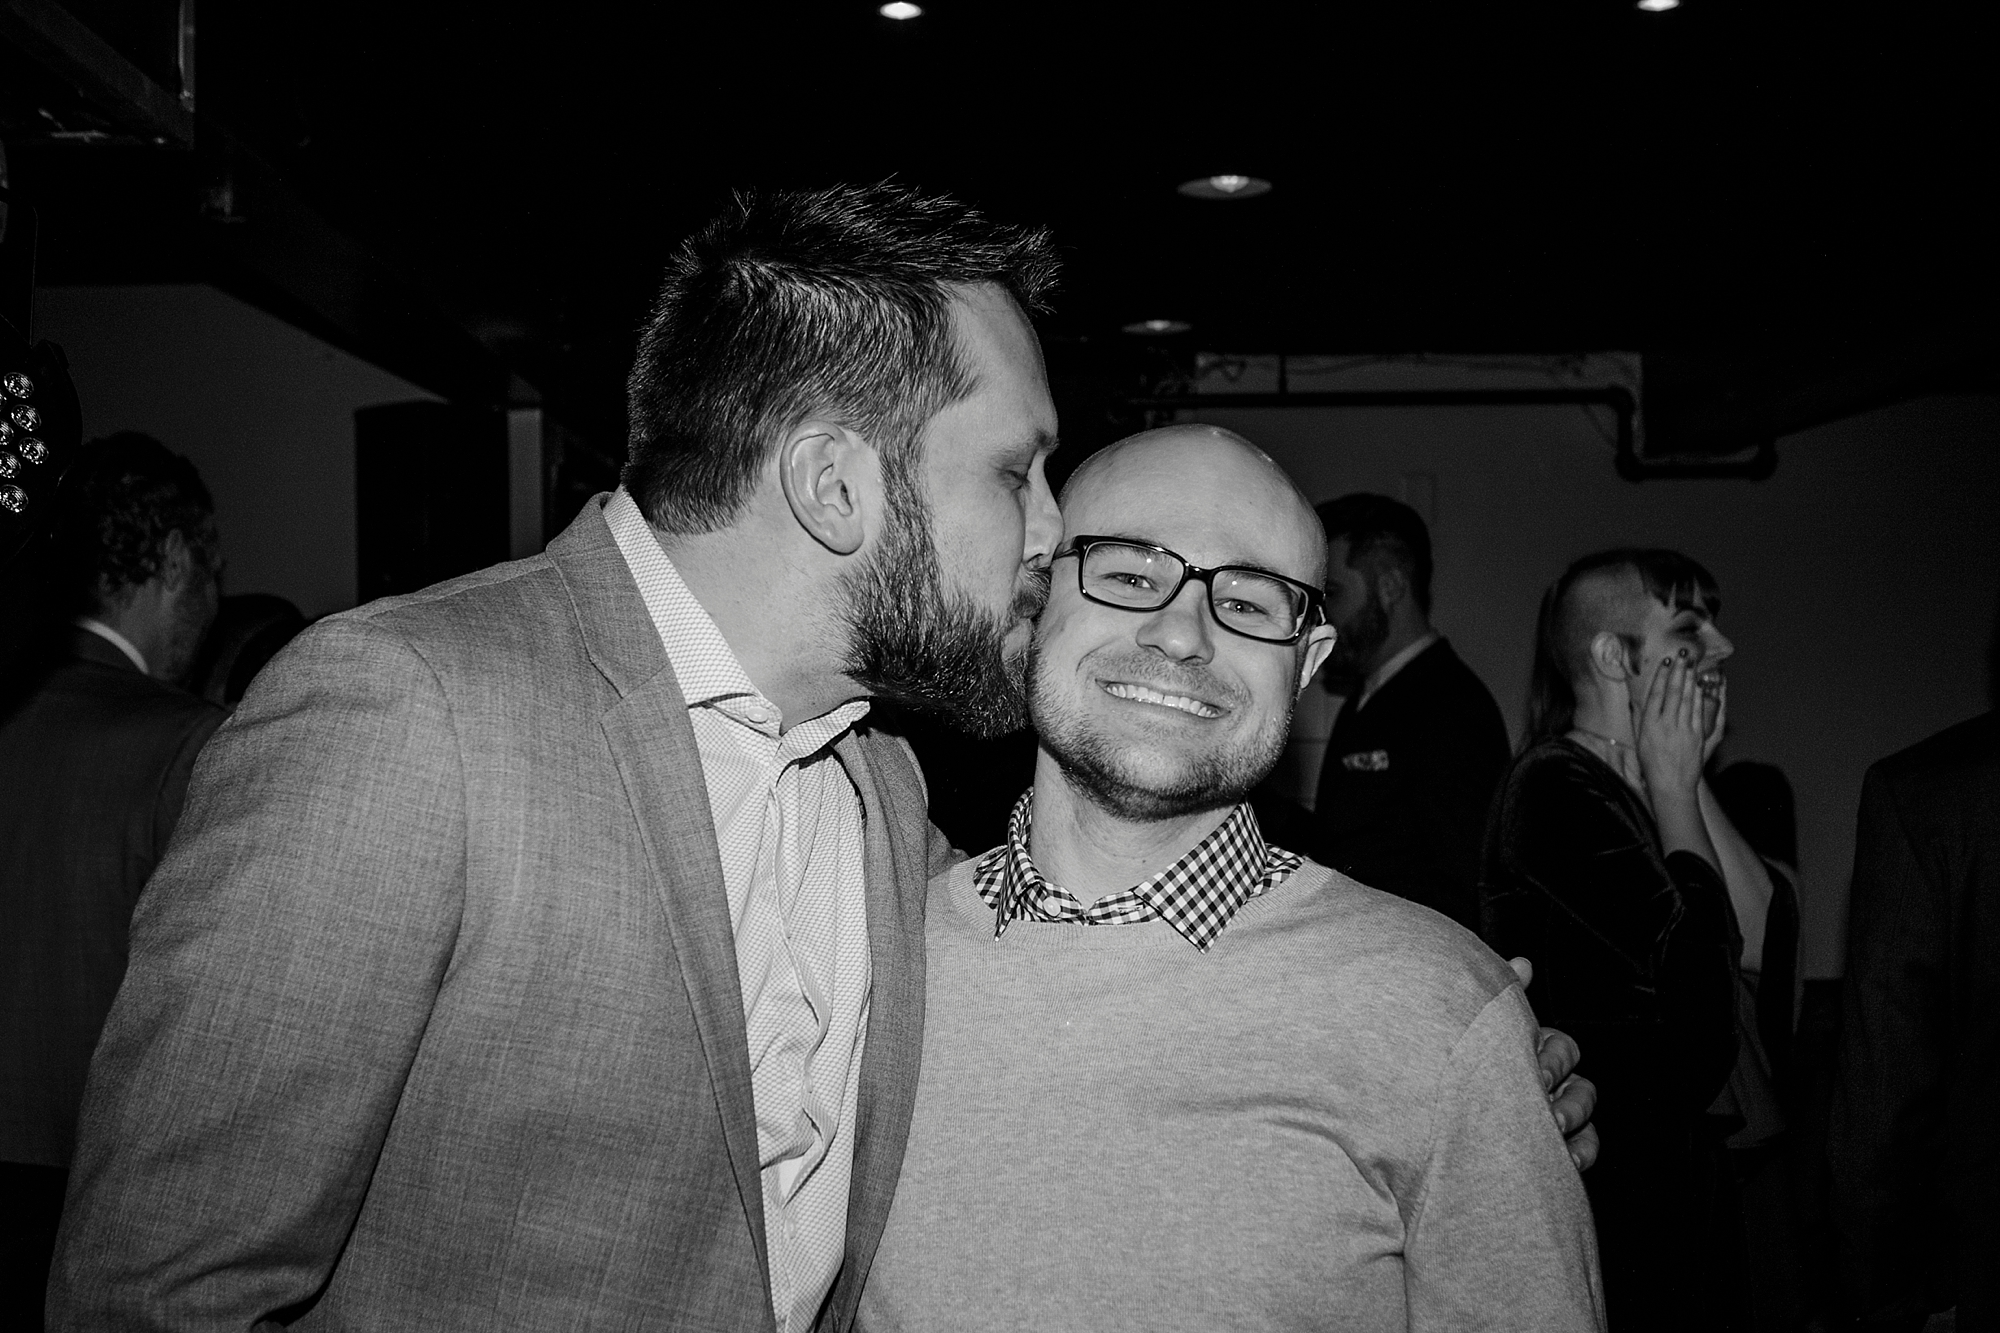 Joe_Mac_Creative_Philadelphia_Philly_LGBT_Gay_Engagement_Wedding_Photography__0157.jpg